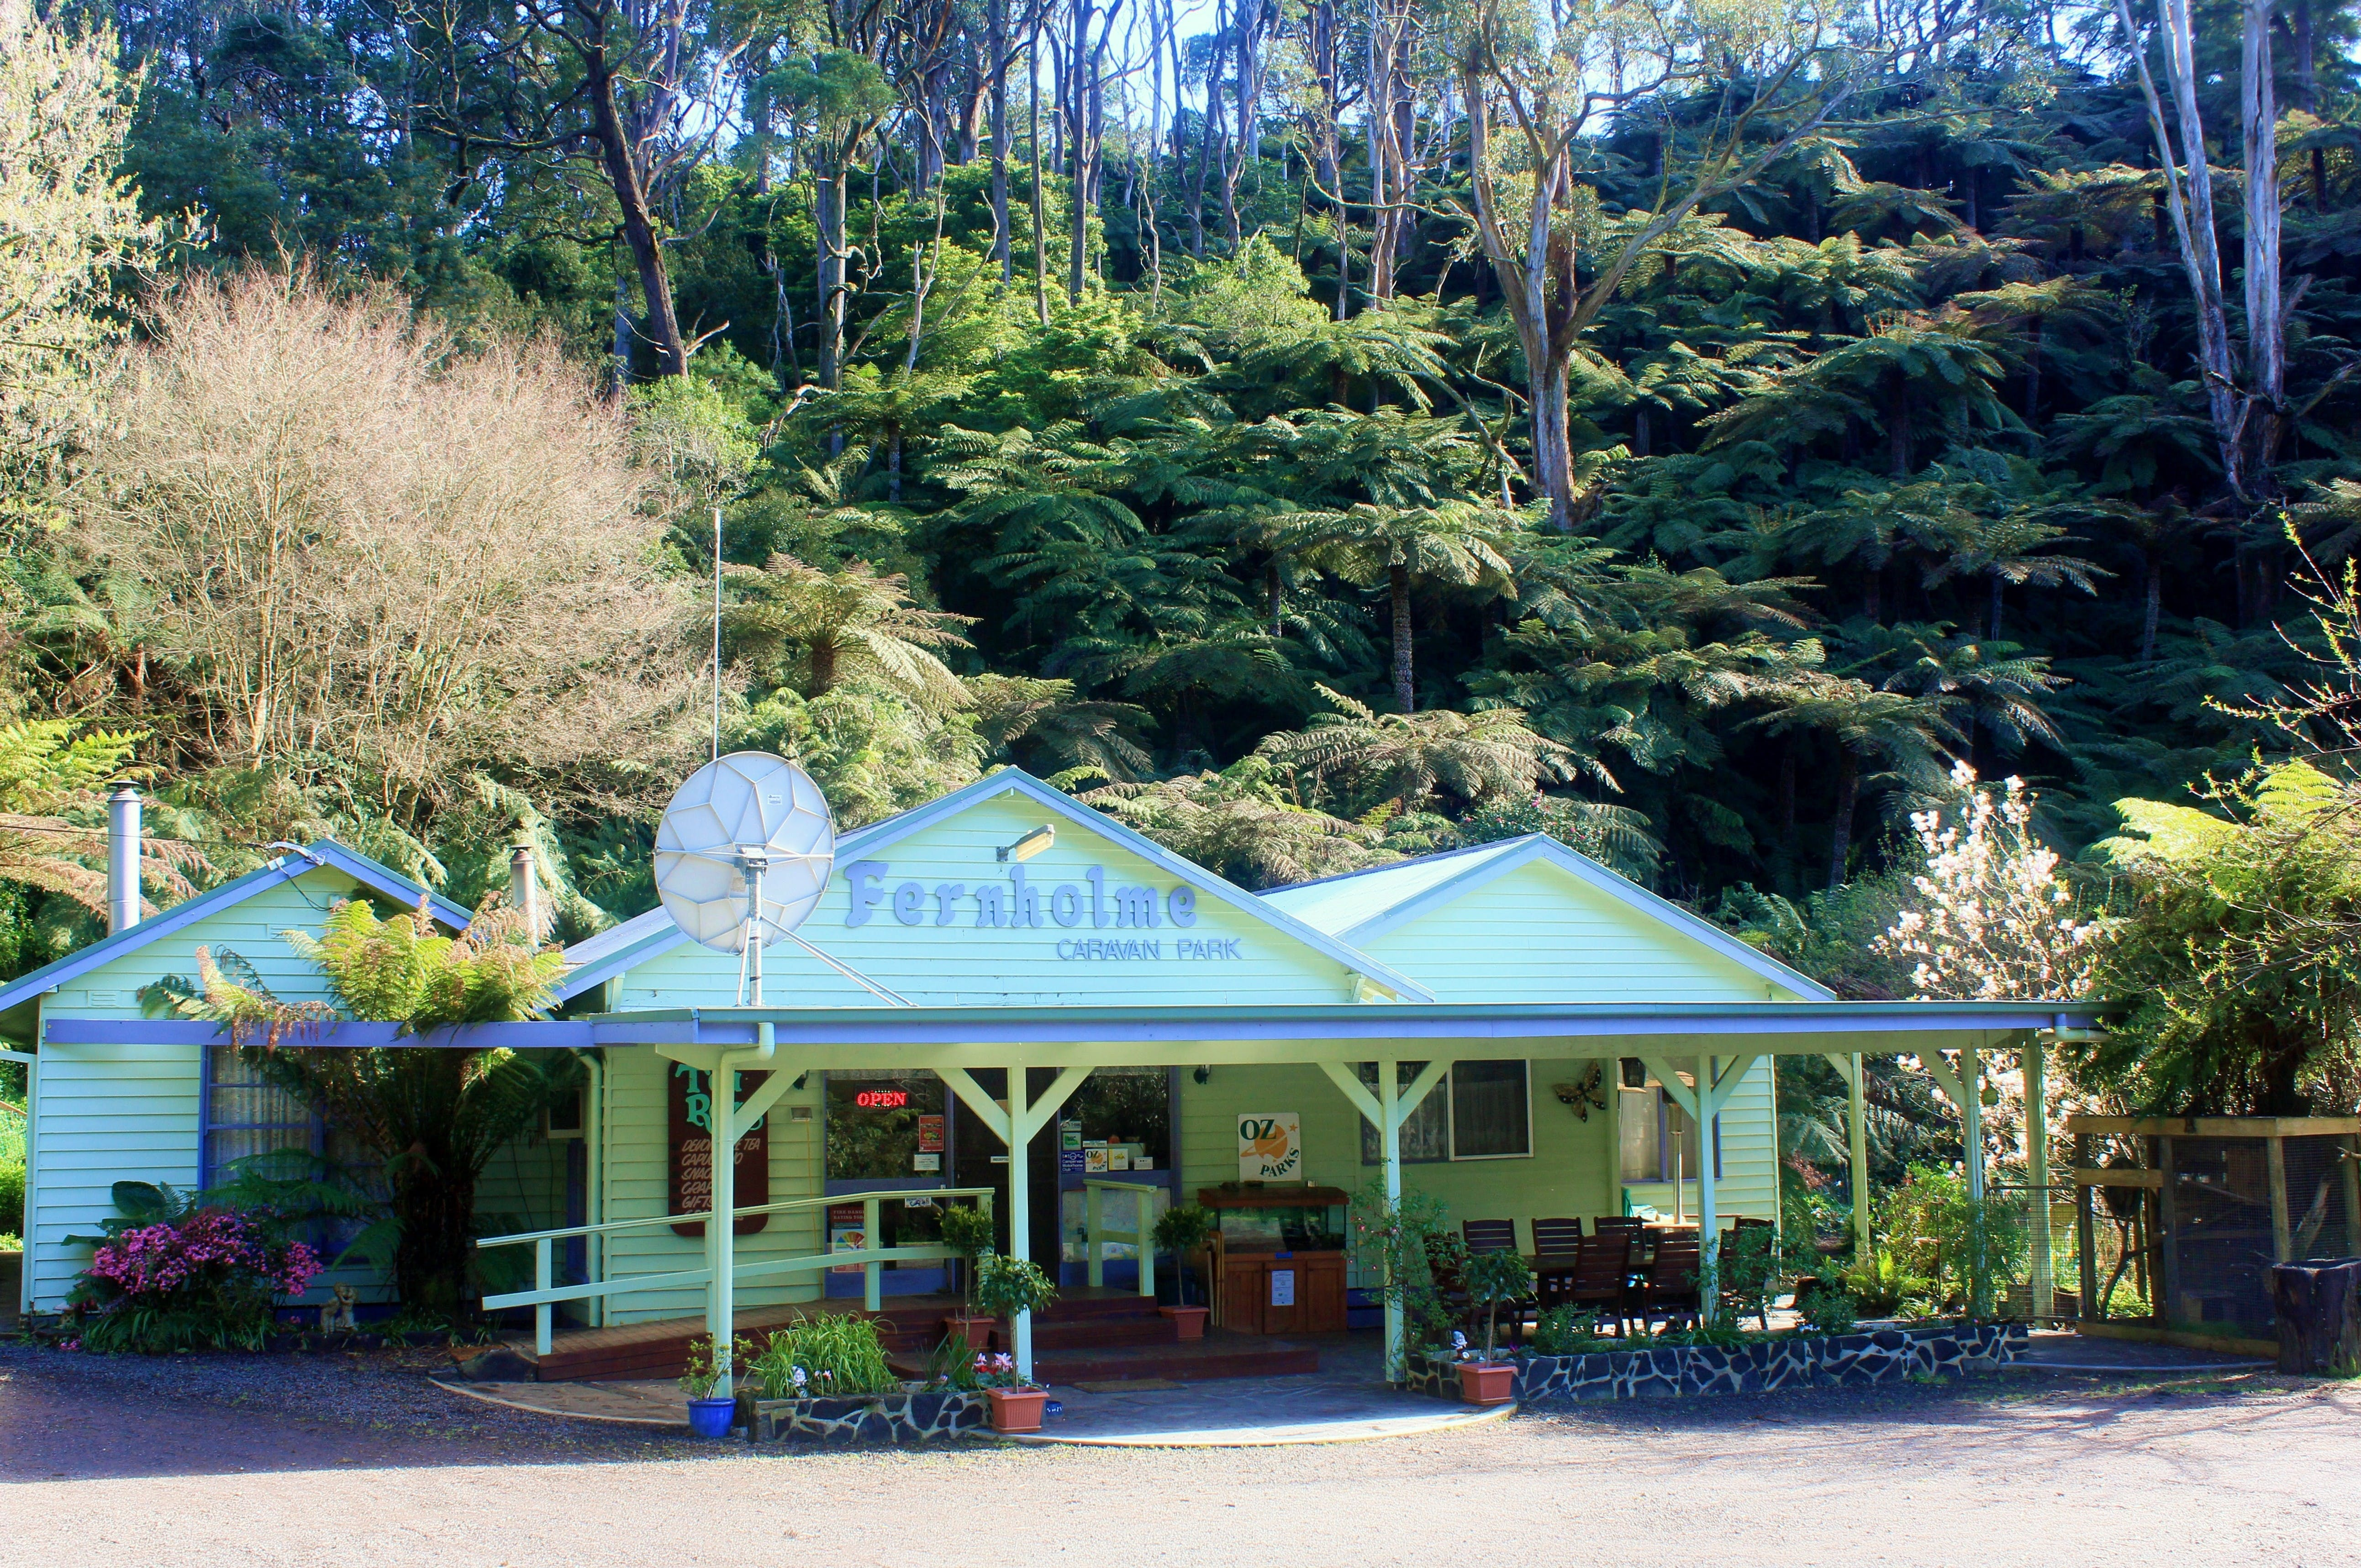 Tarra Valley Caravan Park - Yarra Valley Accommodation